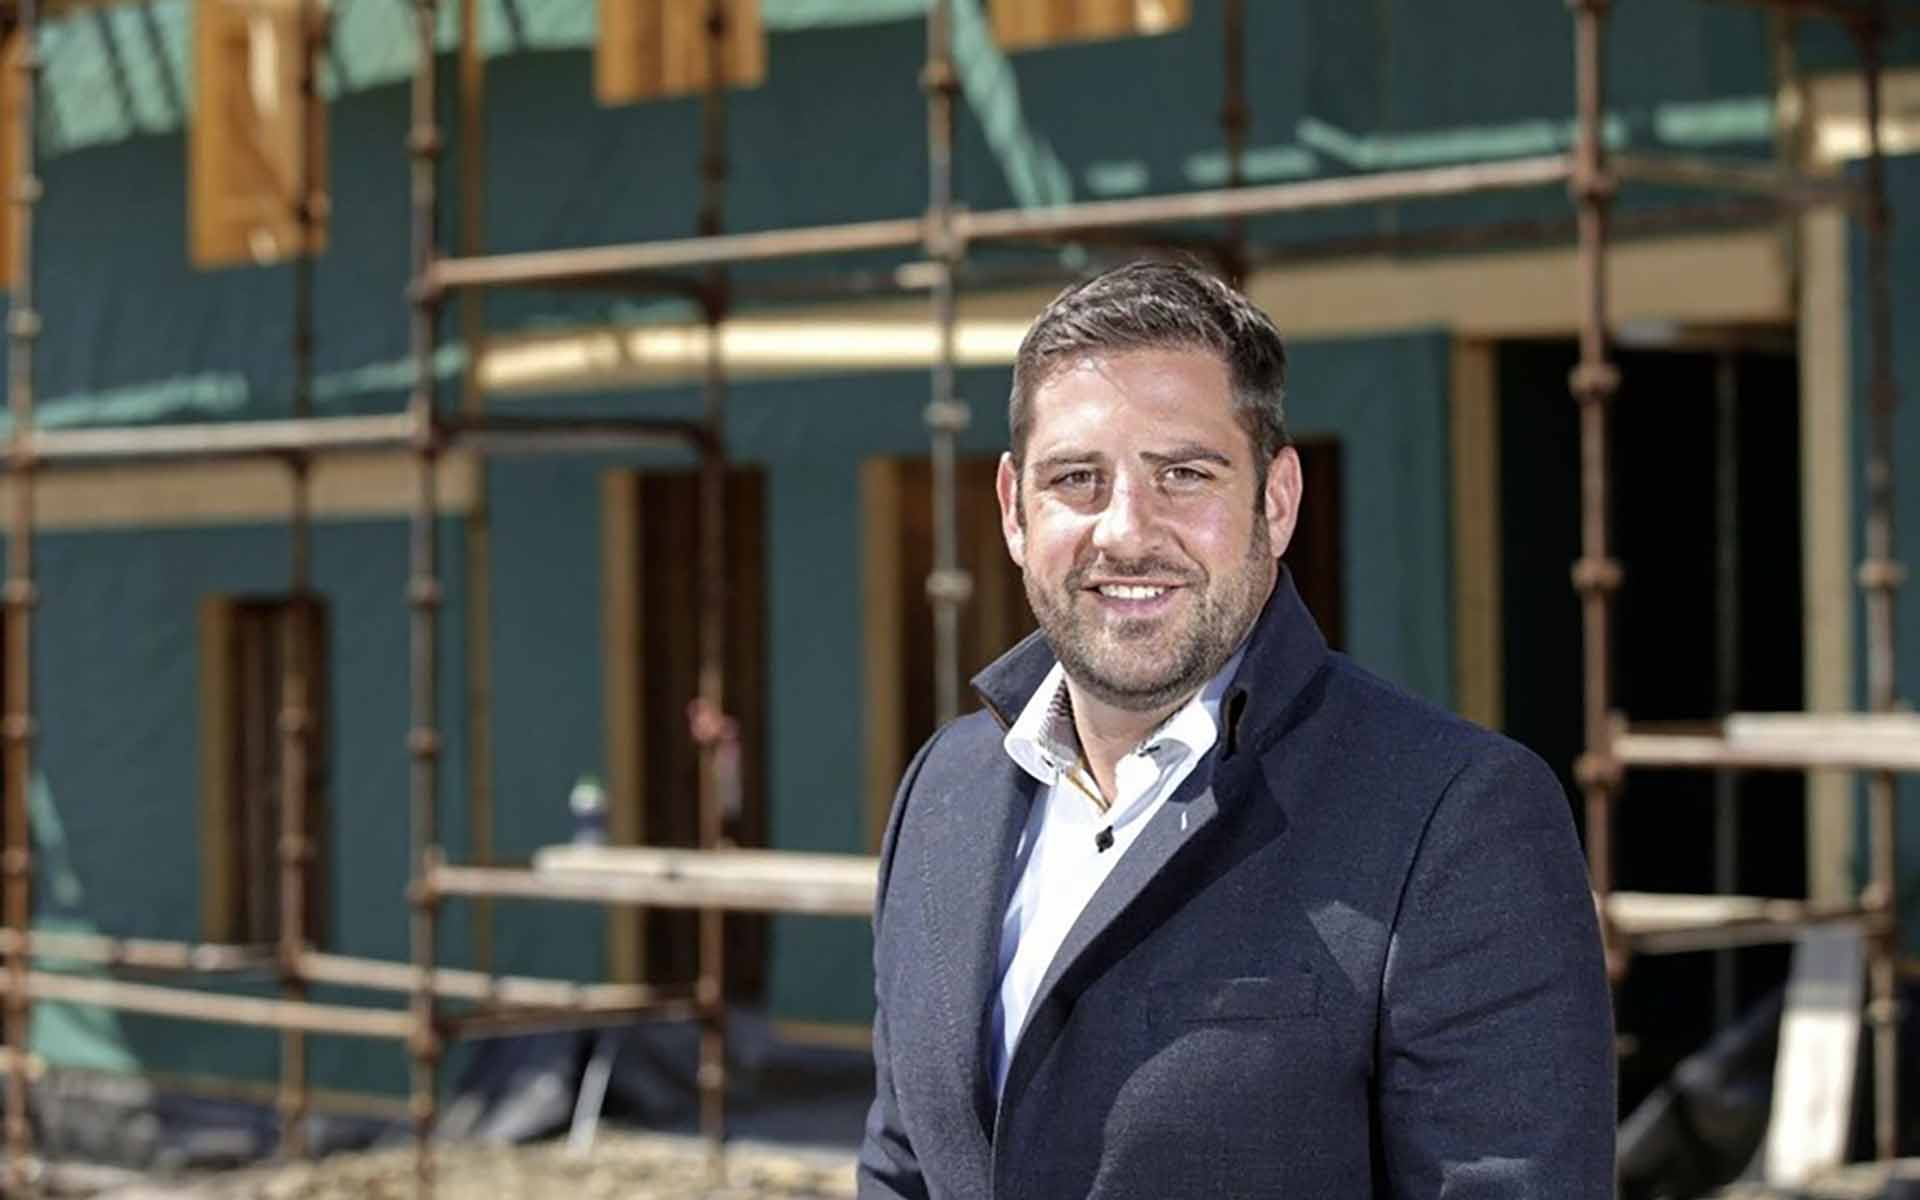 Largest Irish Residential Property Developer Building Homes for Bitcoin